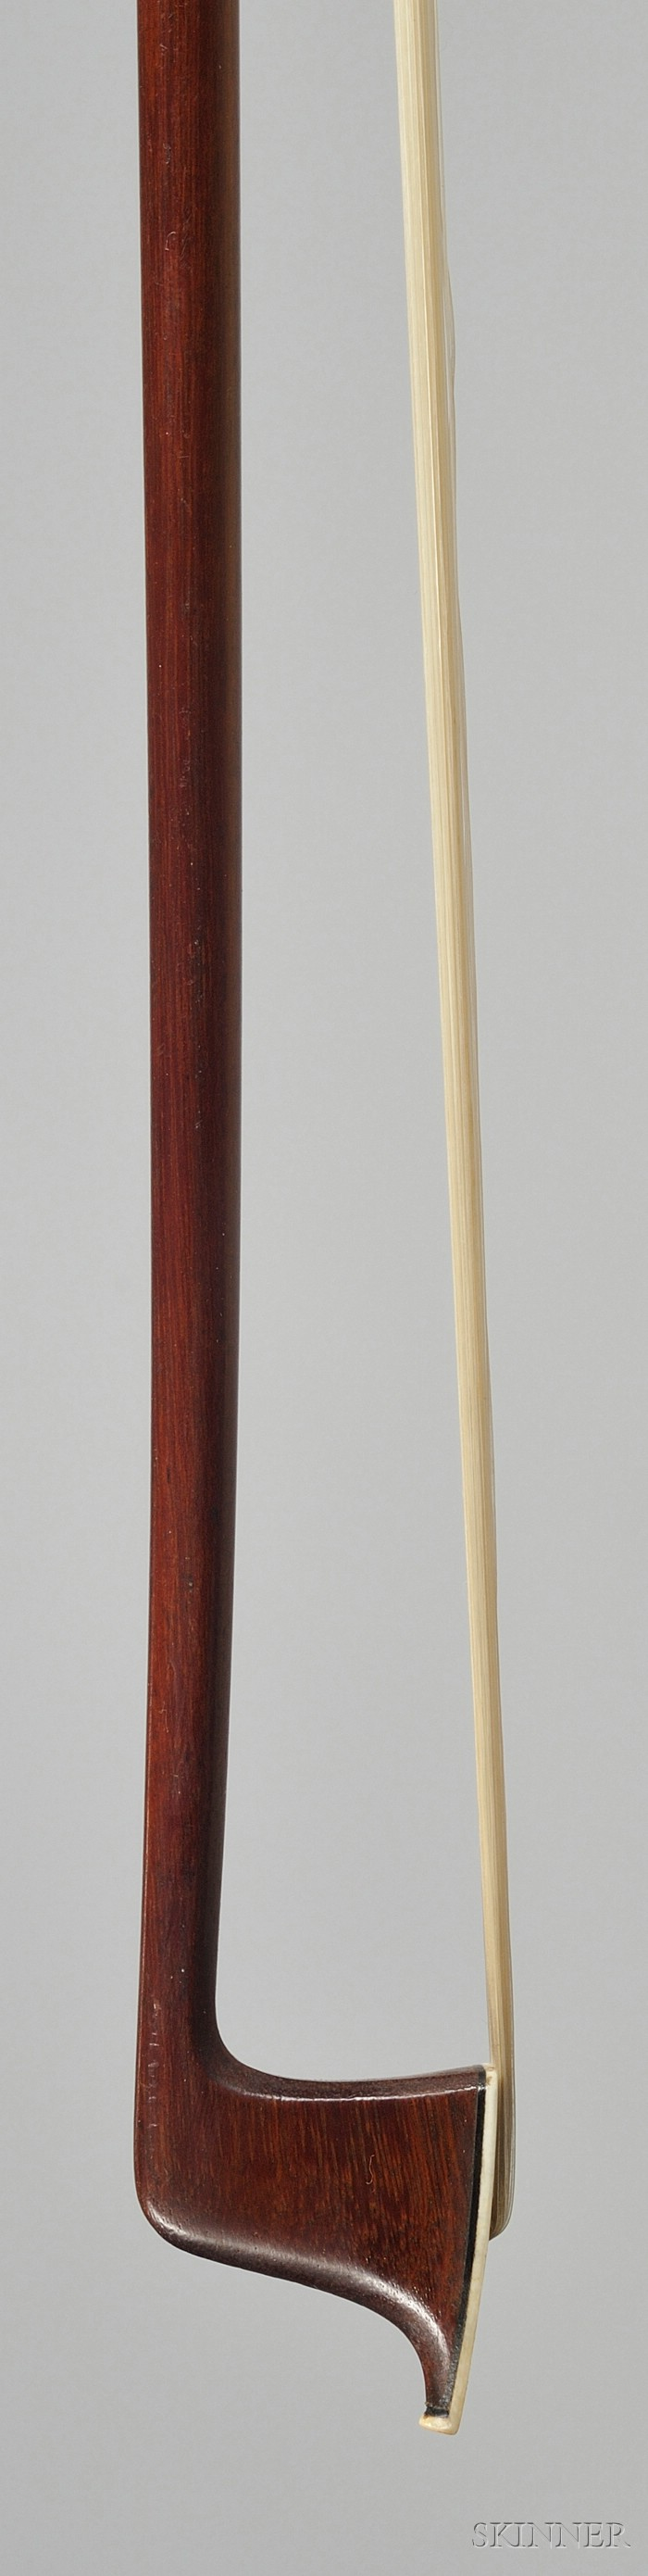 French Silver Mounted Violin Bow, Eugene Sartory, c. 1910